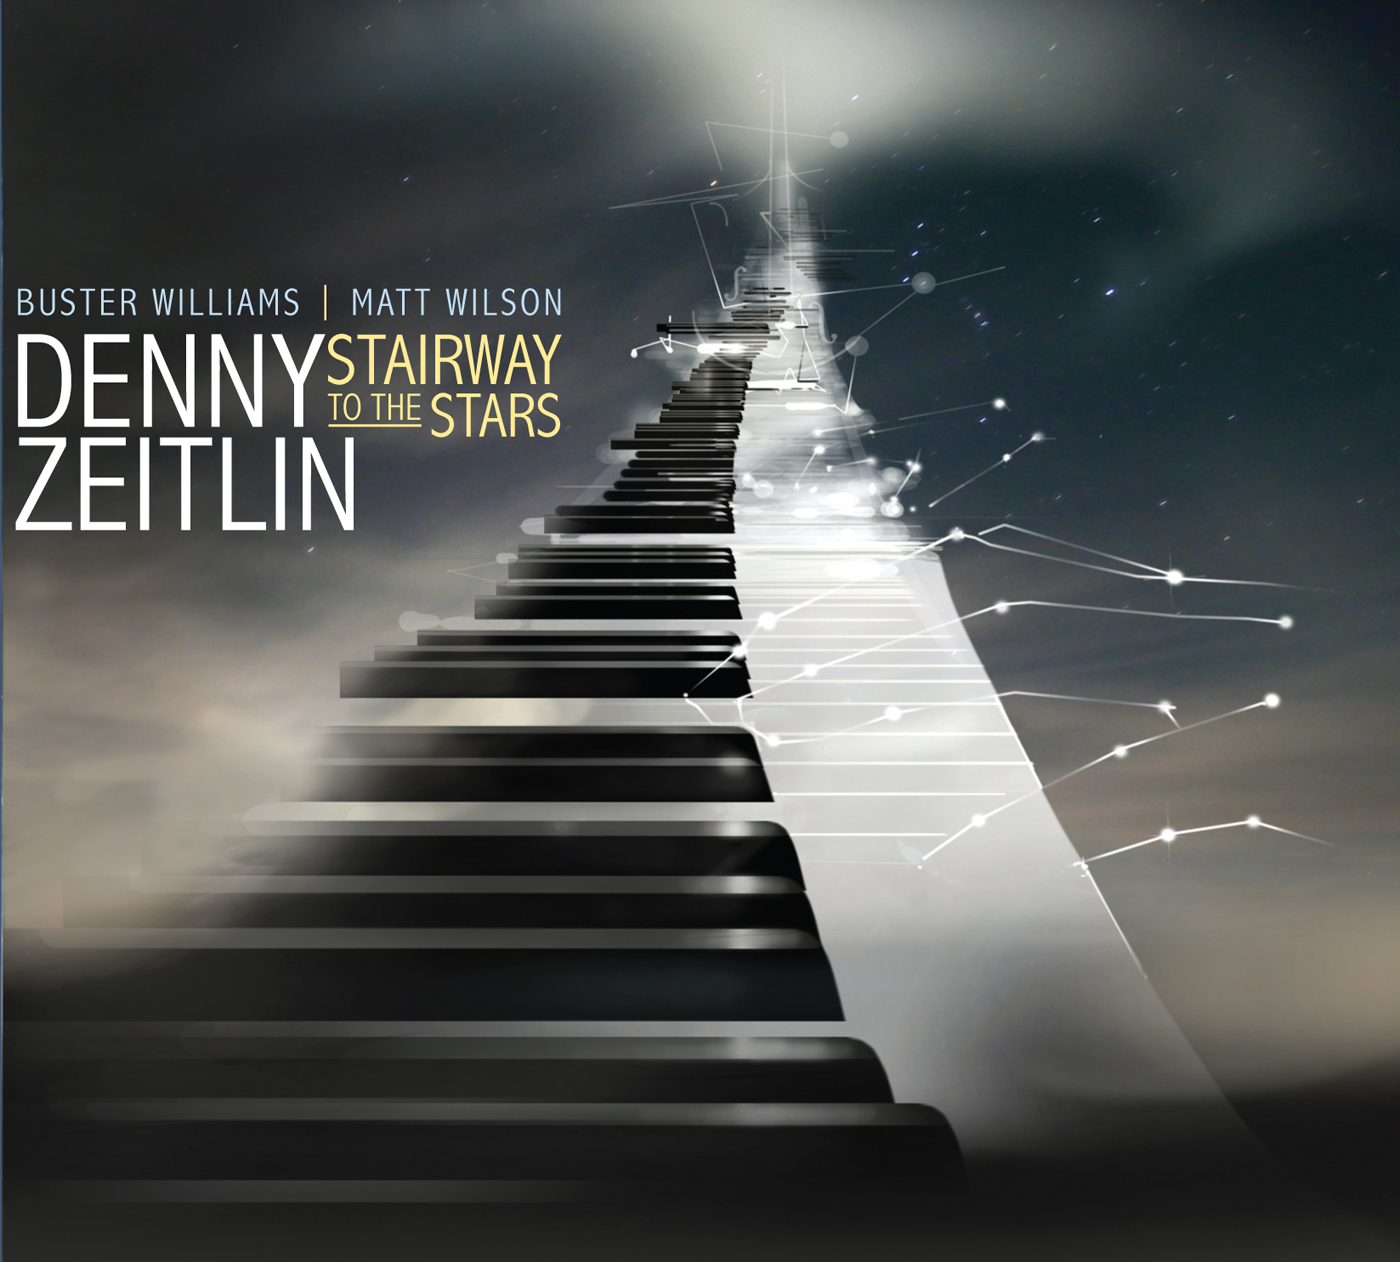 Stairway to the Stars  by Denny  Zeitlin cover